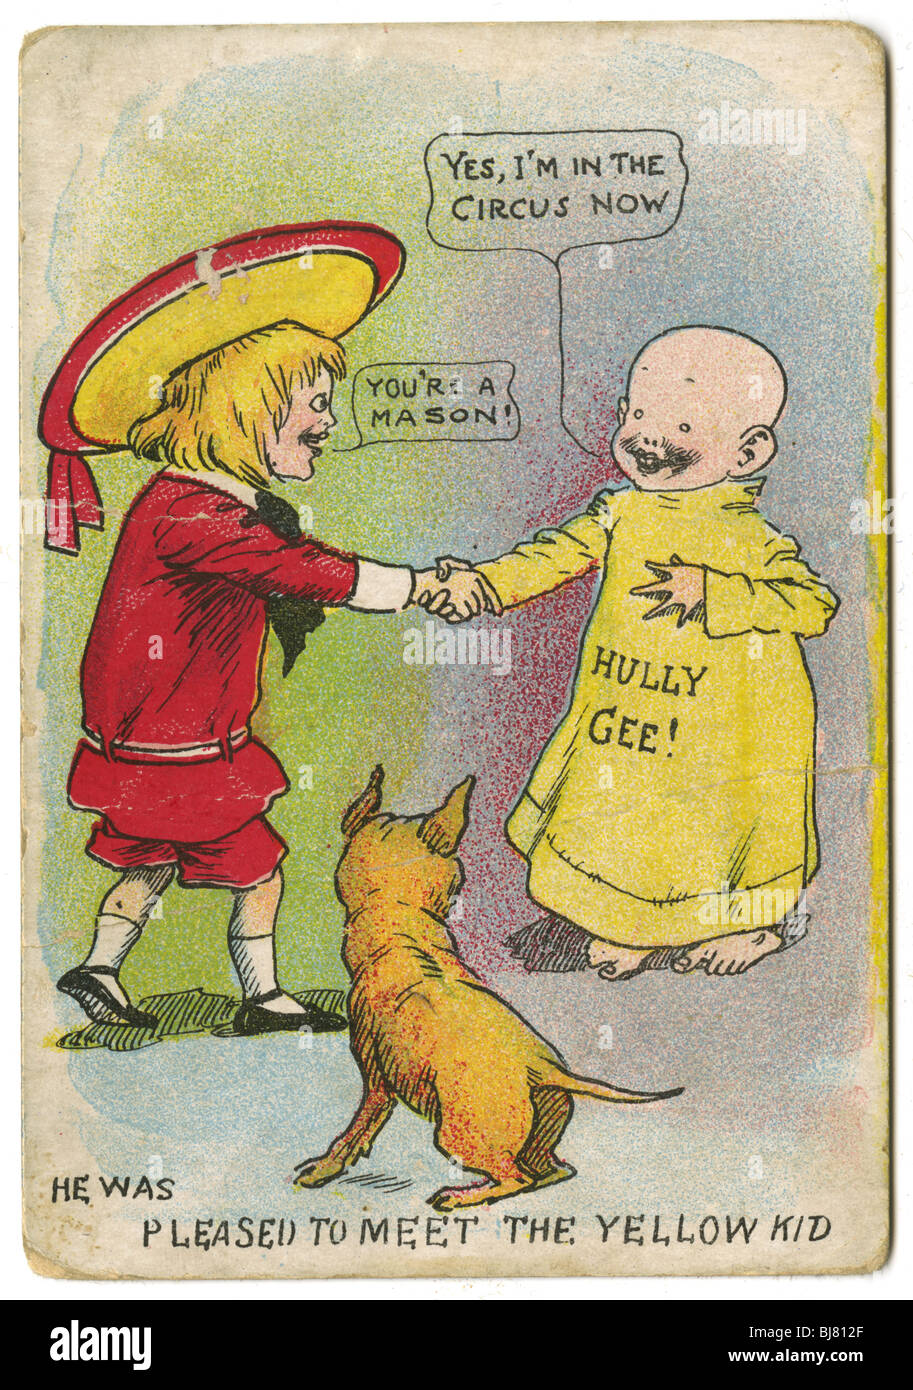 Circa 1904 Buster Brown and the Yellow Kid trading card, with Tige the dog, by R.F. Outcault. - Stock Image